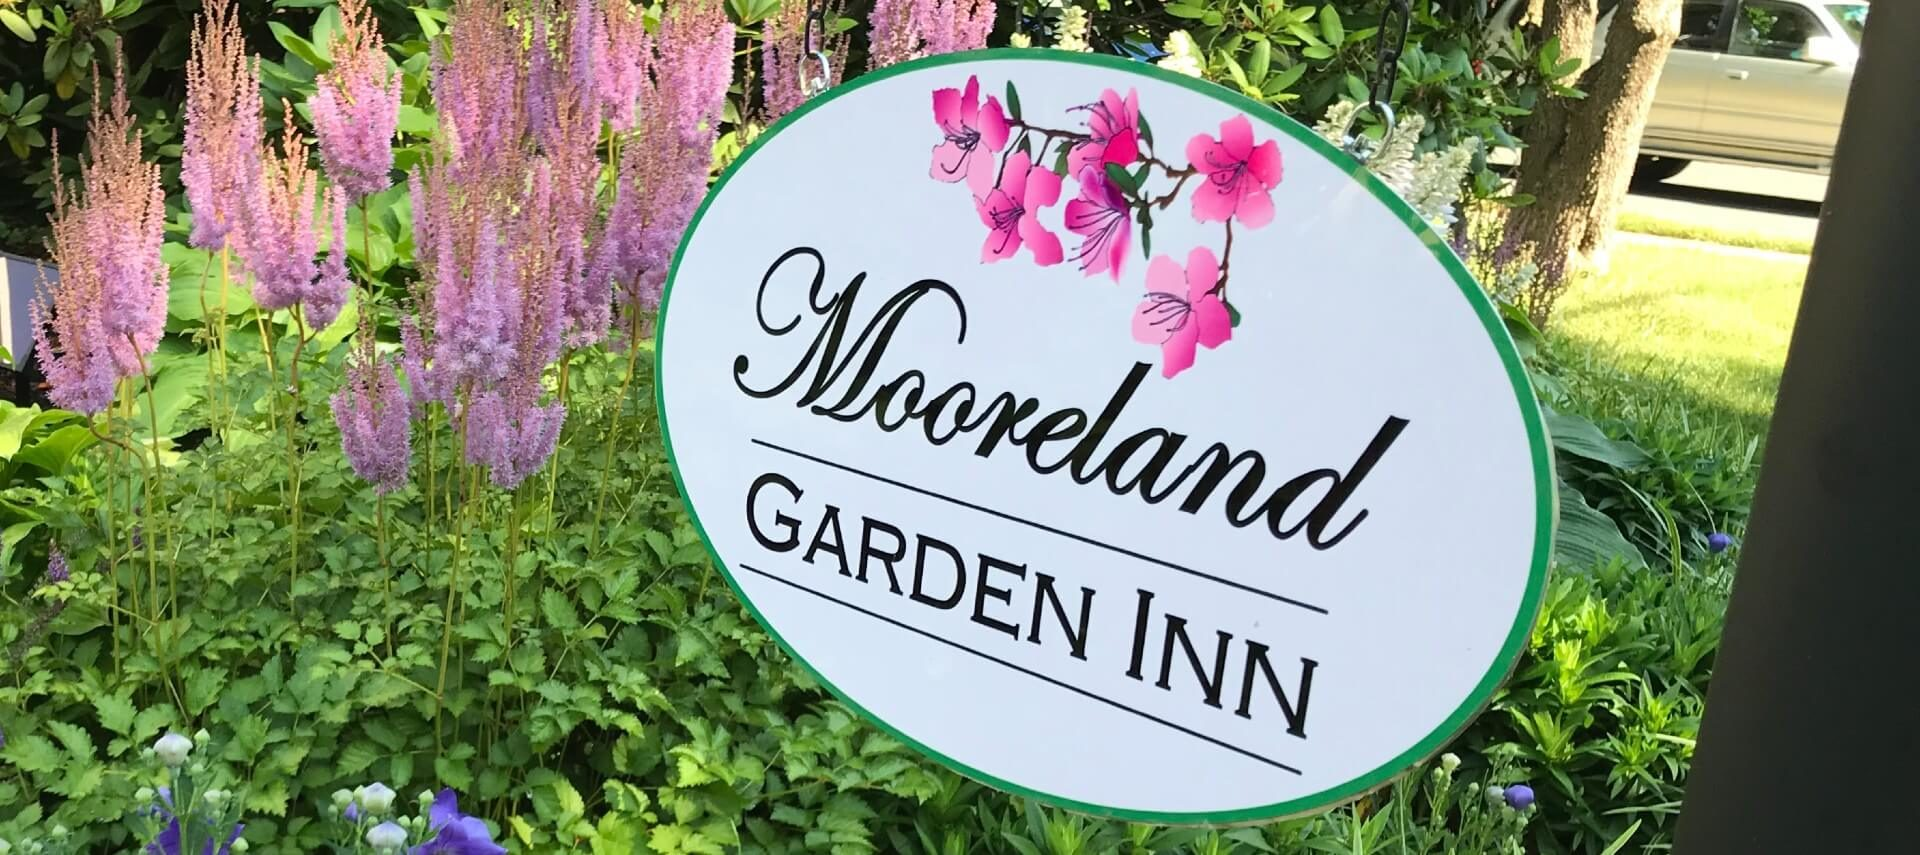 Large white oval business sign with black text and pink flowers hanging over a flower bed